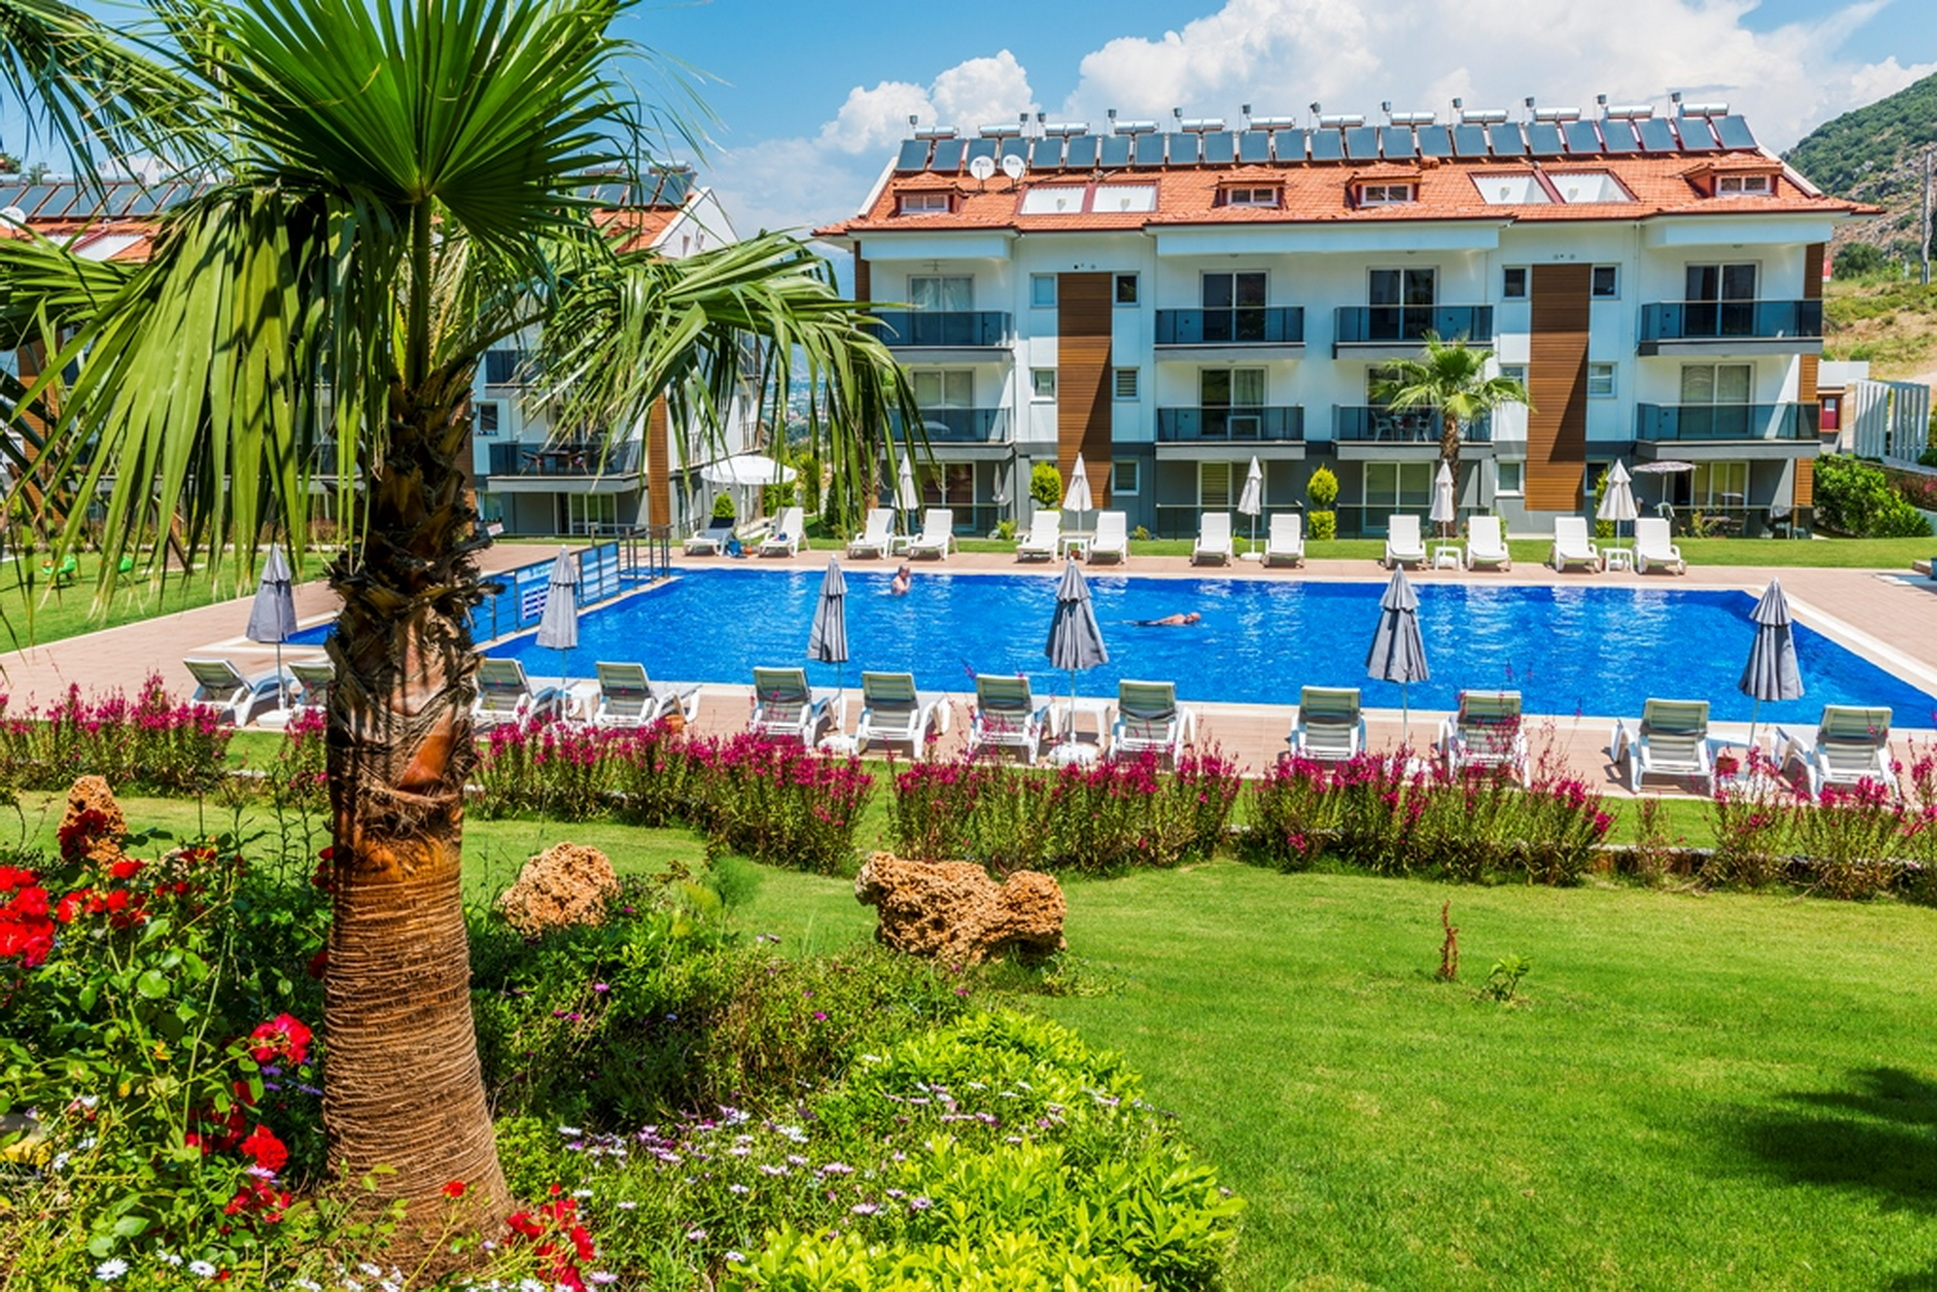 Luxury 3 Bedroom Apartment in a Beautiful Complex with Shared Pool